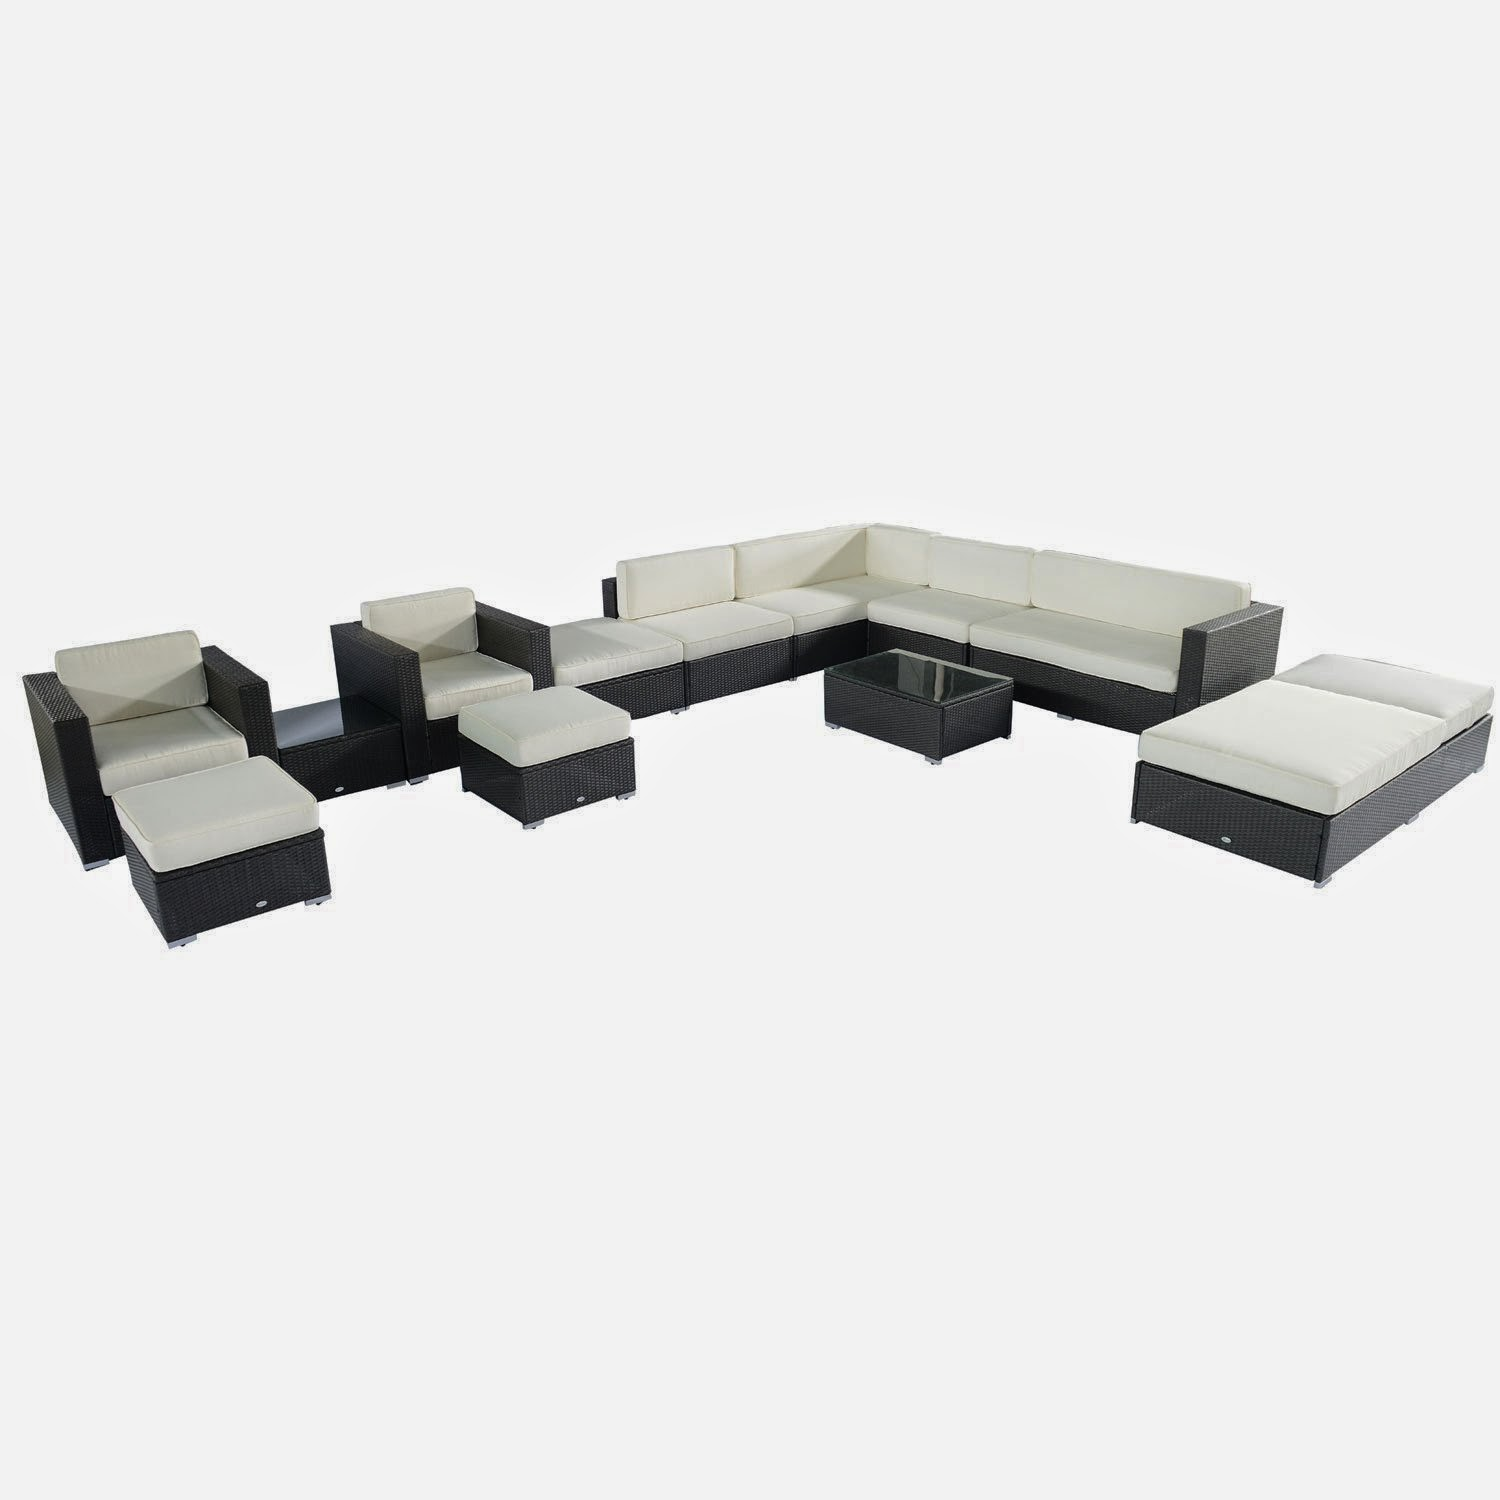 Outsunny Outdoor Rattan Sectional